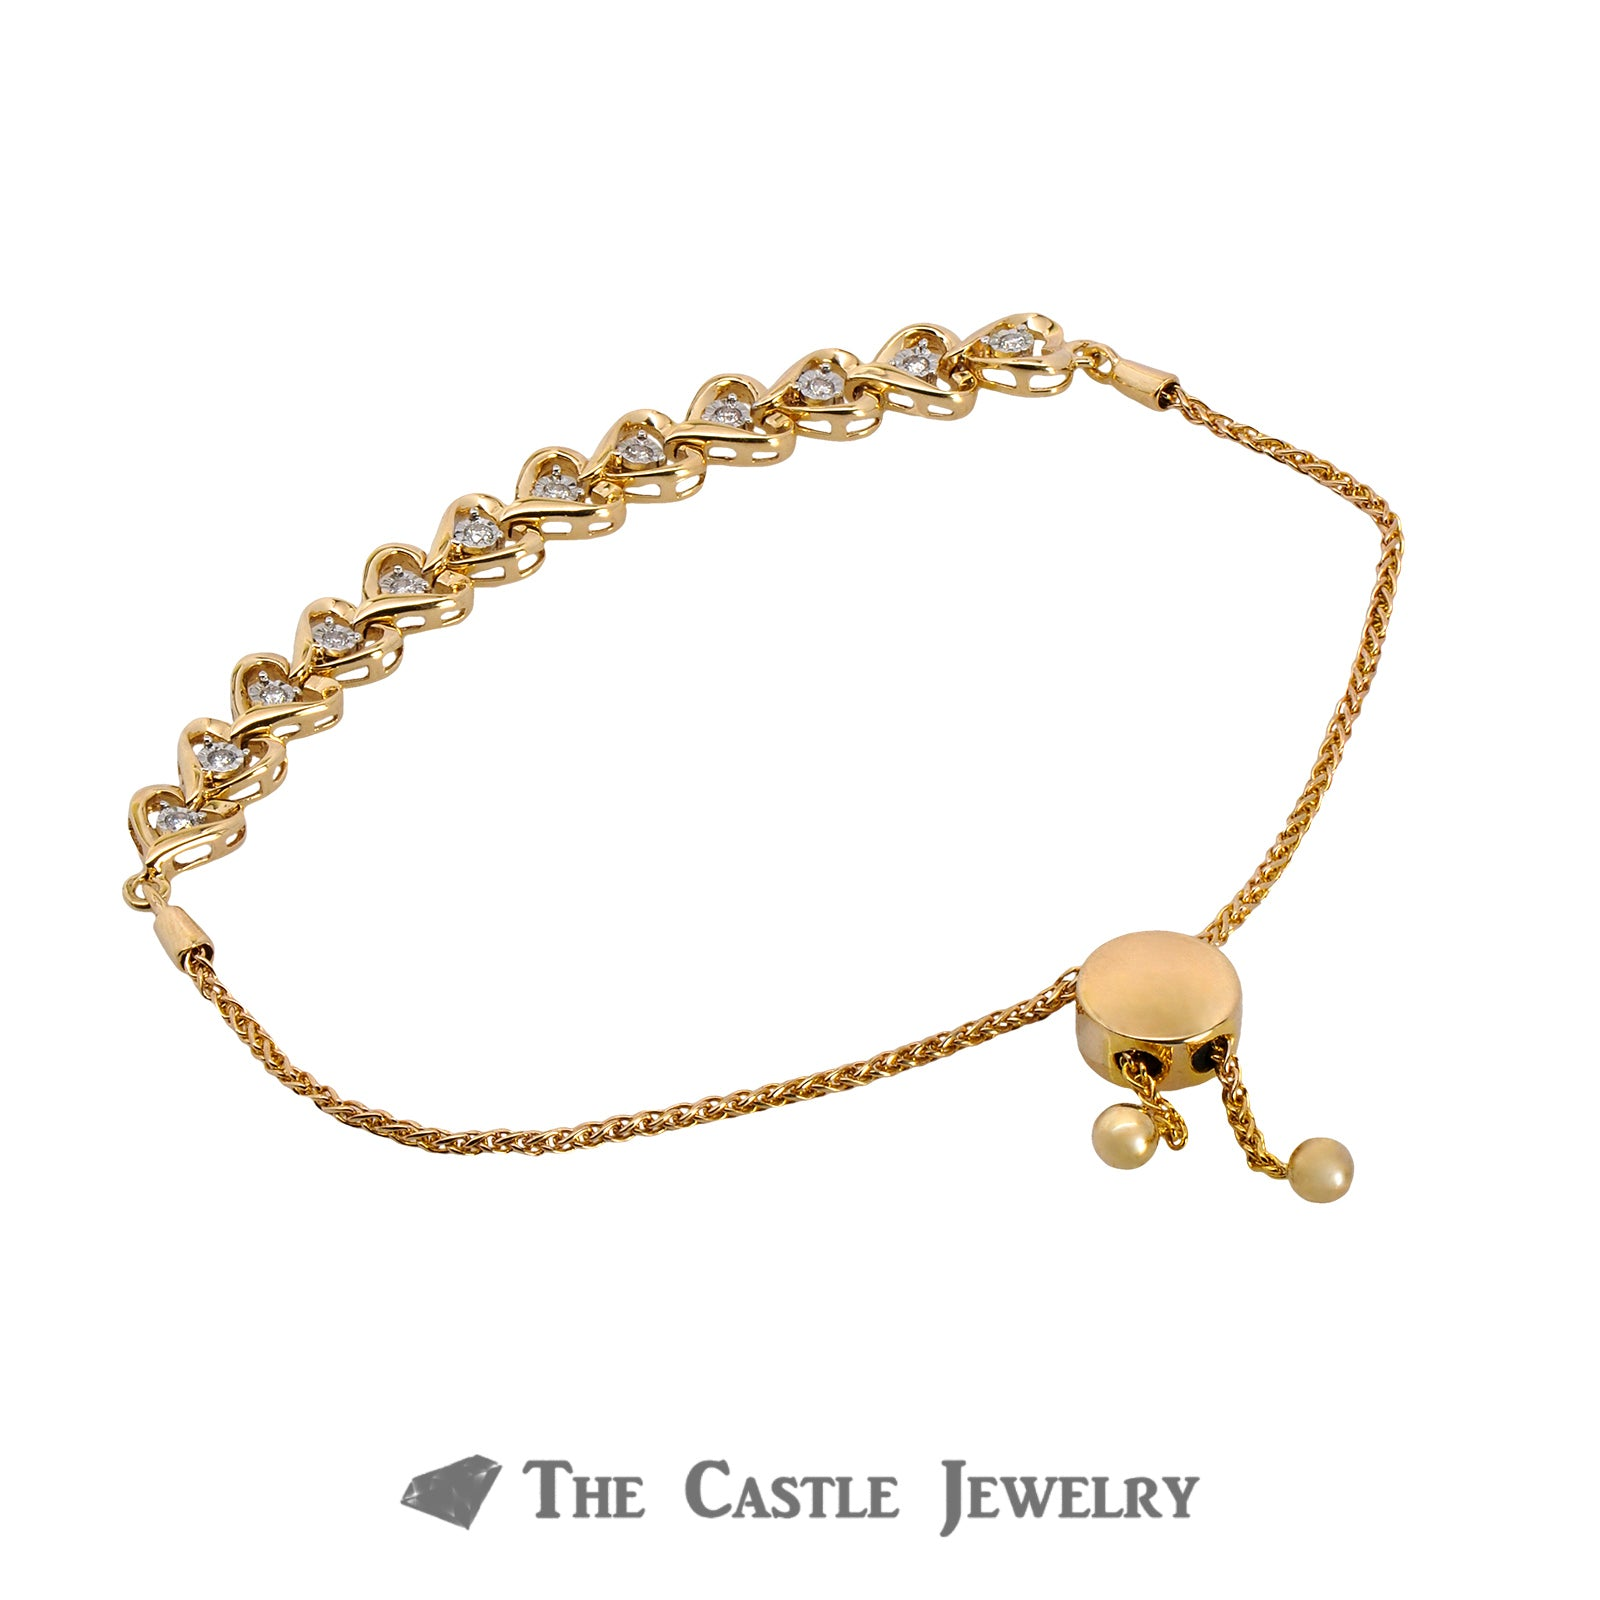 Adjustable Diamond Heart Design Bracelet  Crafted in 10K Yellow Gold